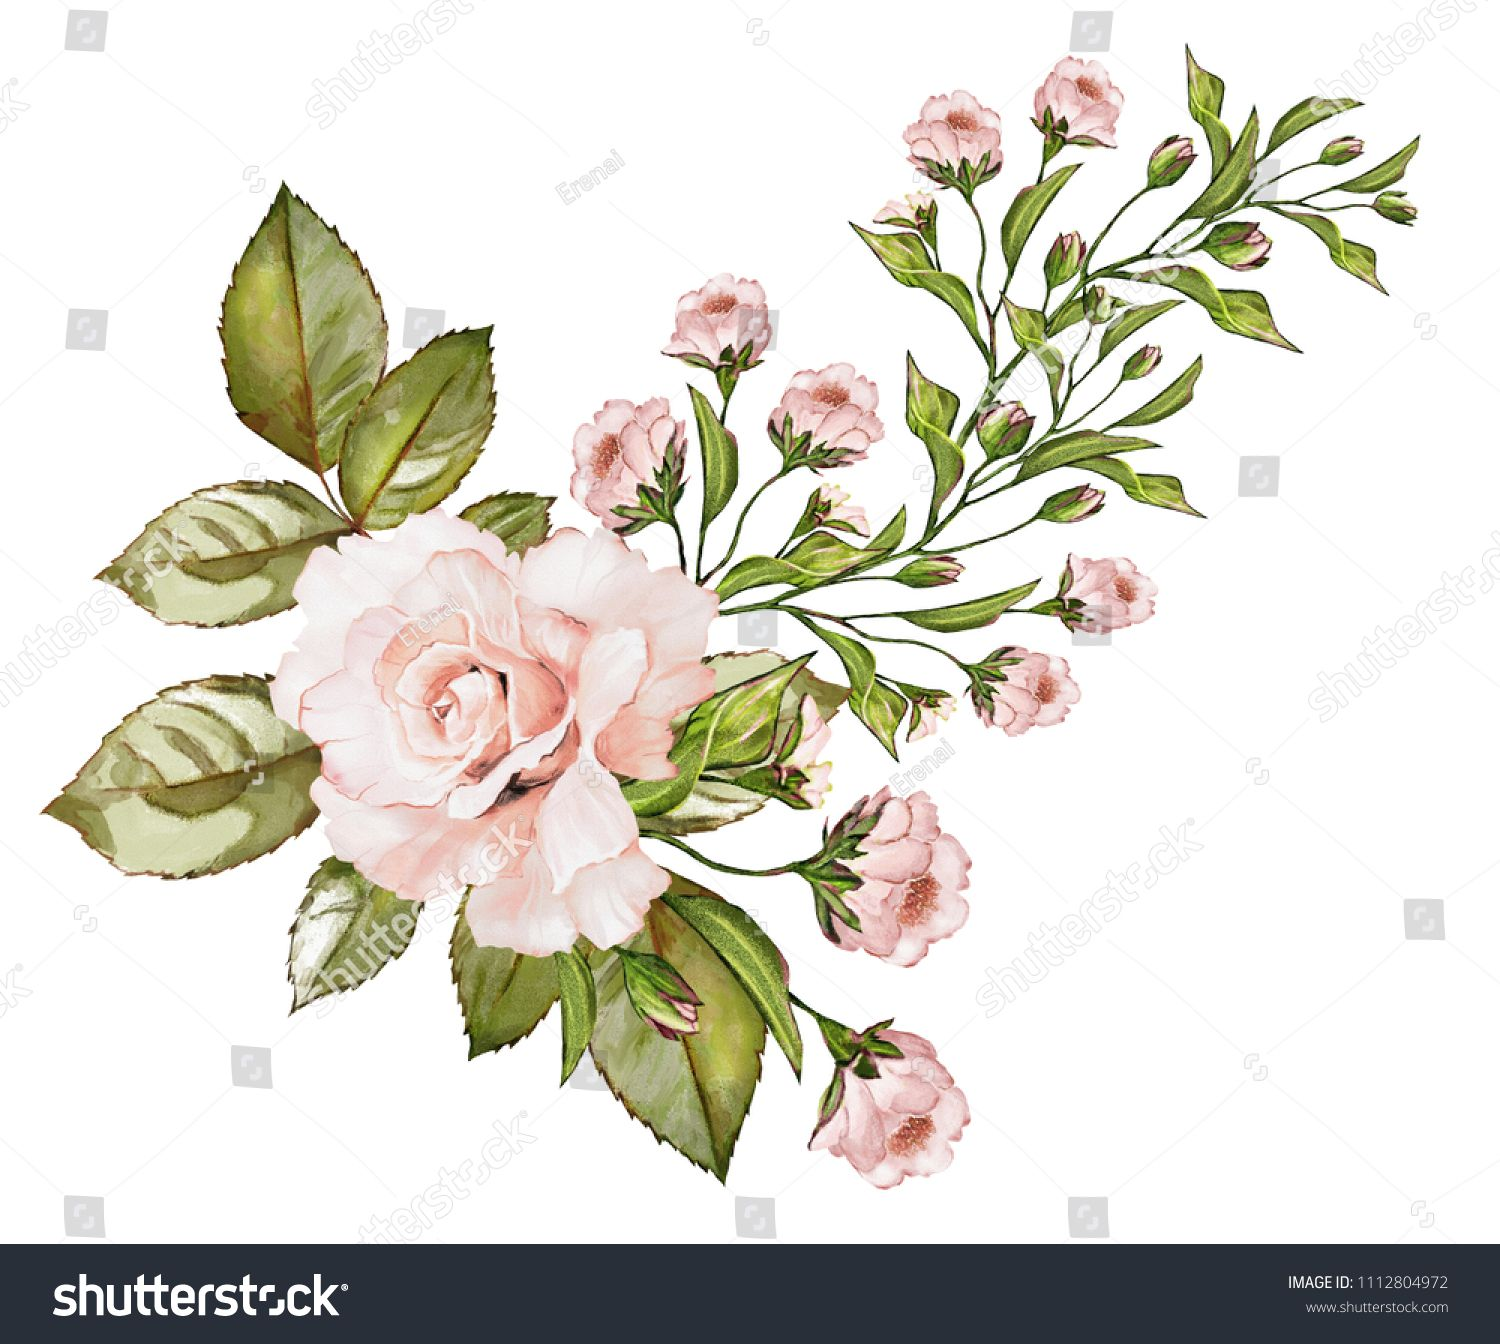 Watercolor Drawing Of A Branch With Leaves And Flowers Botanical Illustration The Composition Of Pink Rose Watercolor Drawing Botanical Illustration Drawings